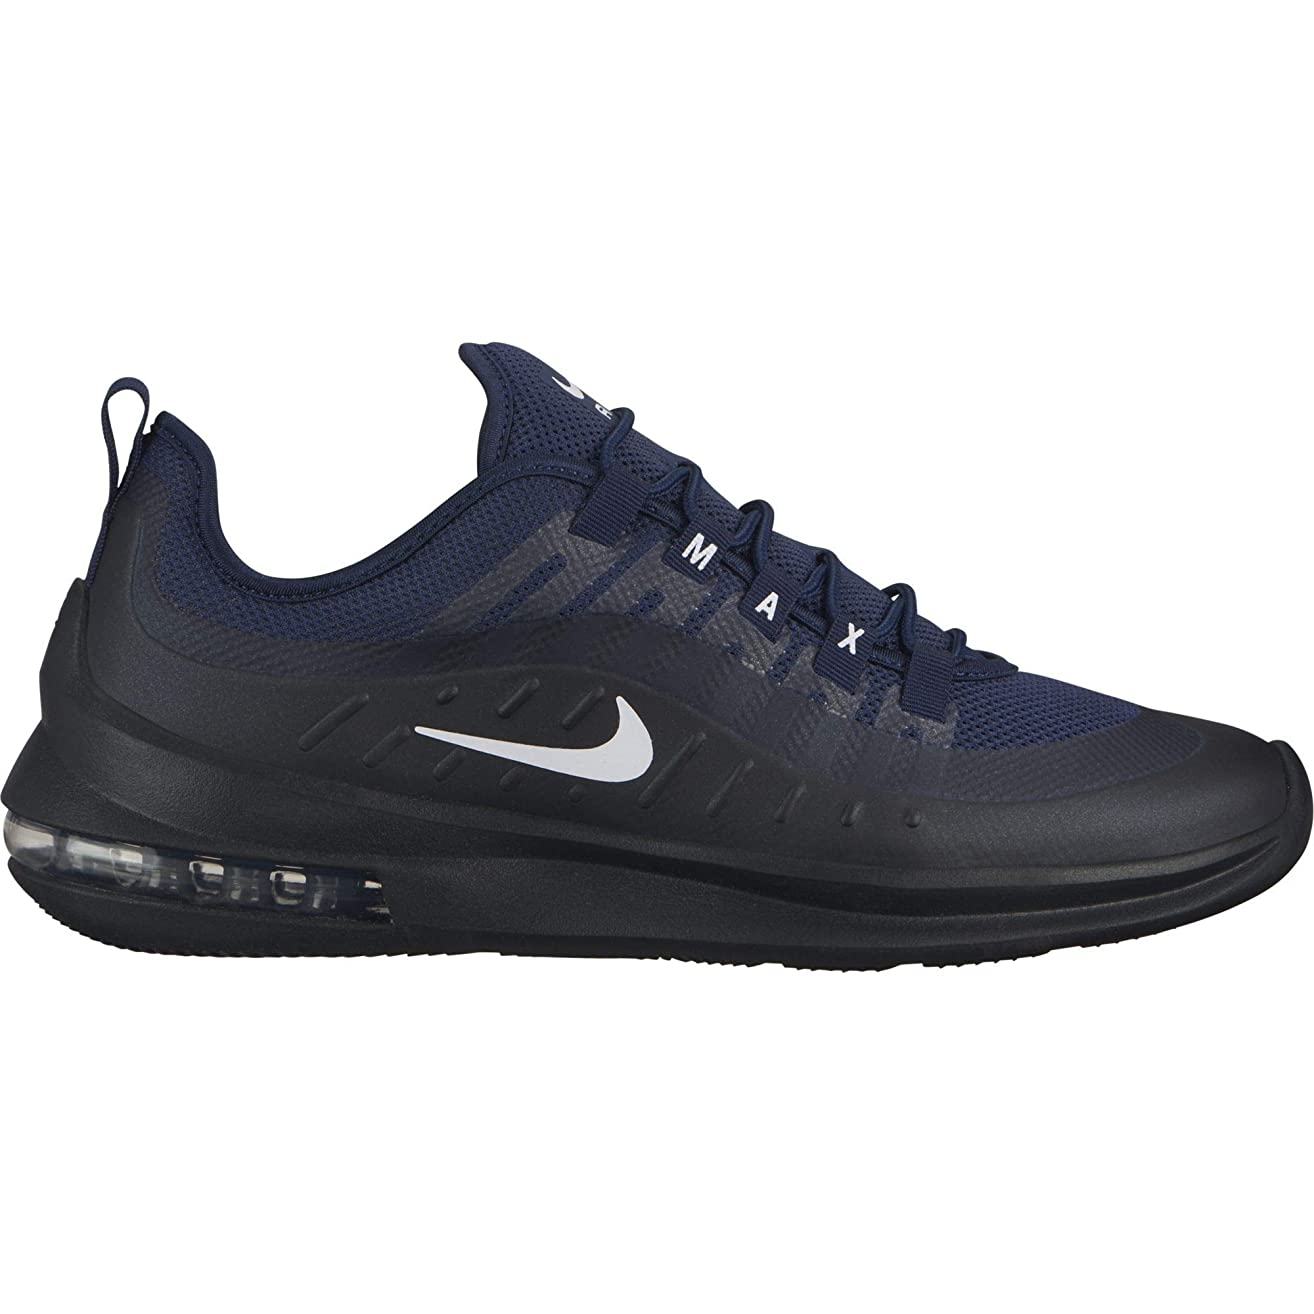 Nike Men's Air Max Axis Midnight Navy/White/Black Size 9 M US